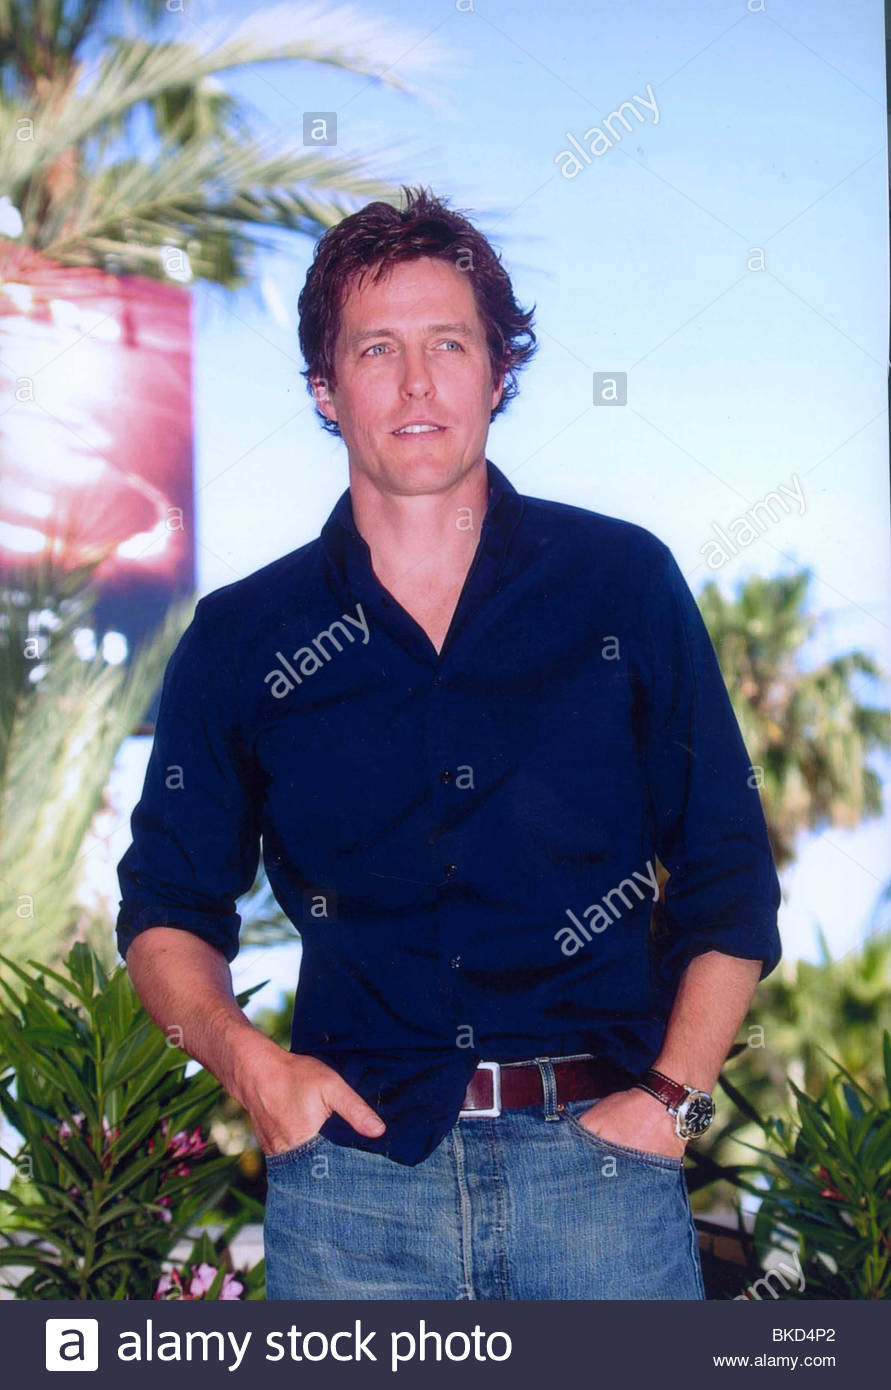 HUGH GRANT PORTRAIT Stock Photo